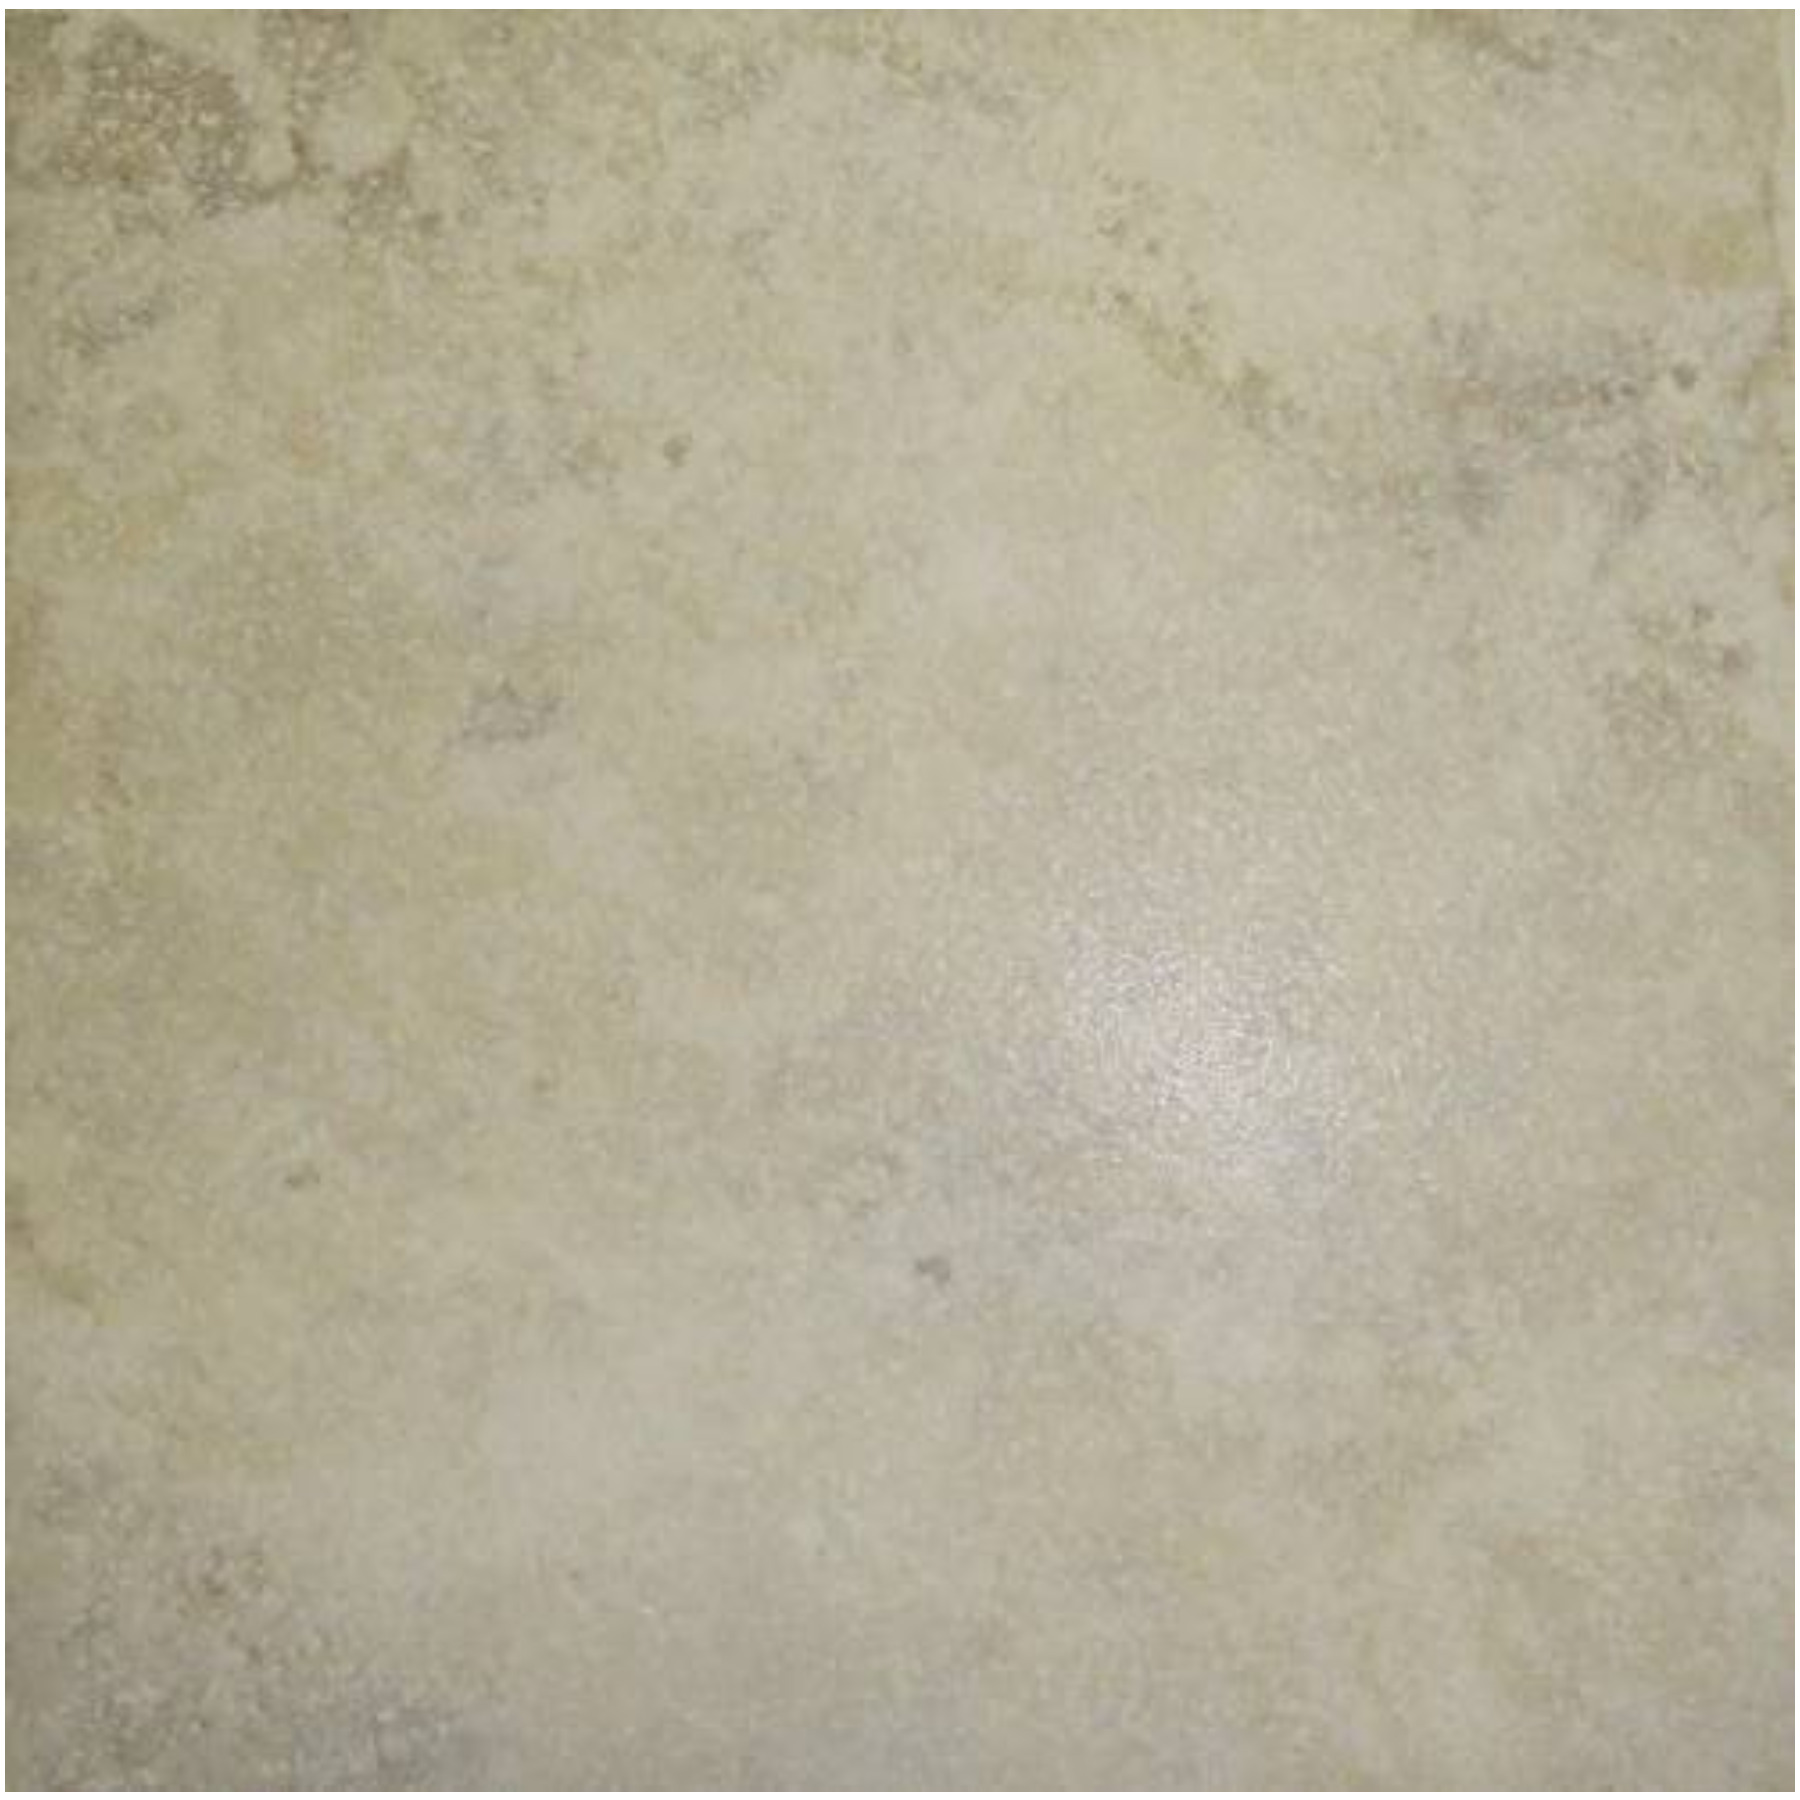 DALTILE SALERNO� WALL TILE, GRIGIO PEARLA, 6X6 IN.